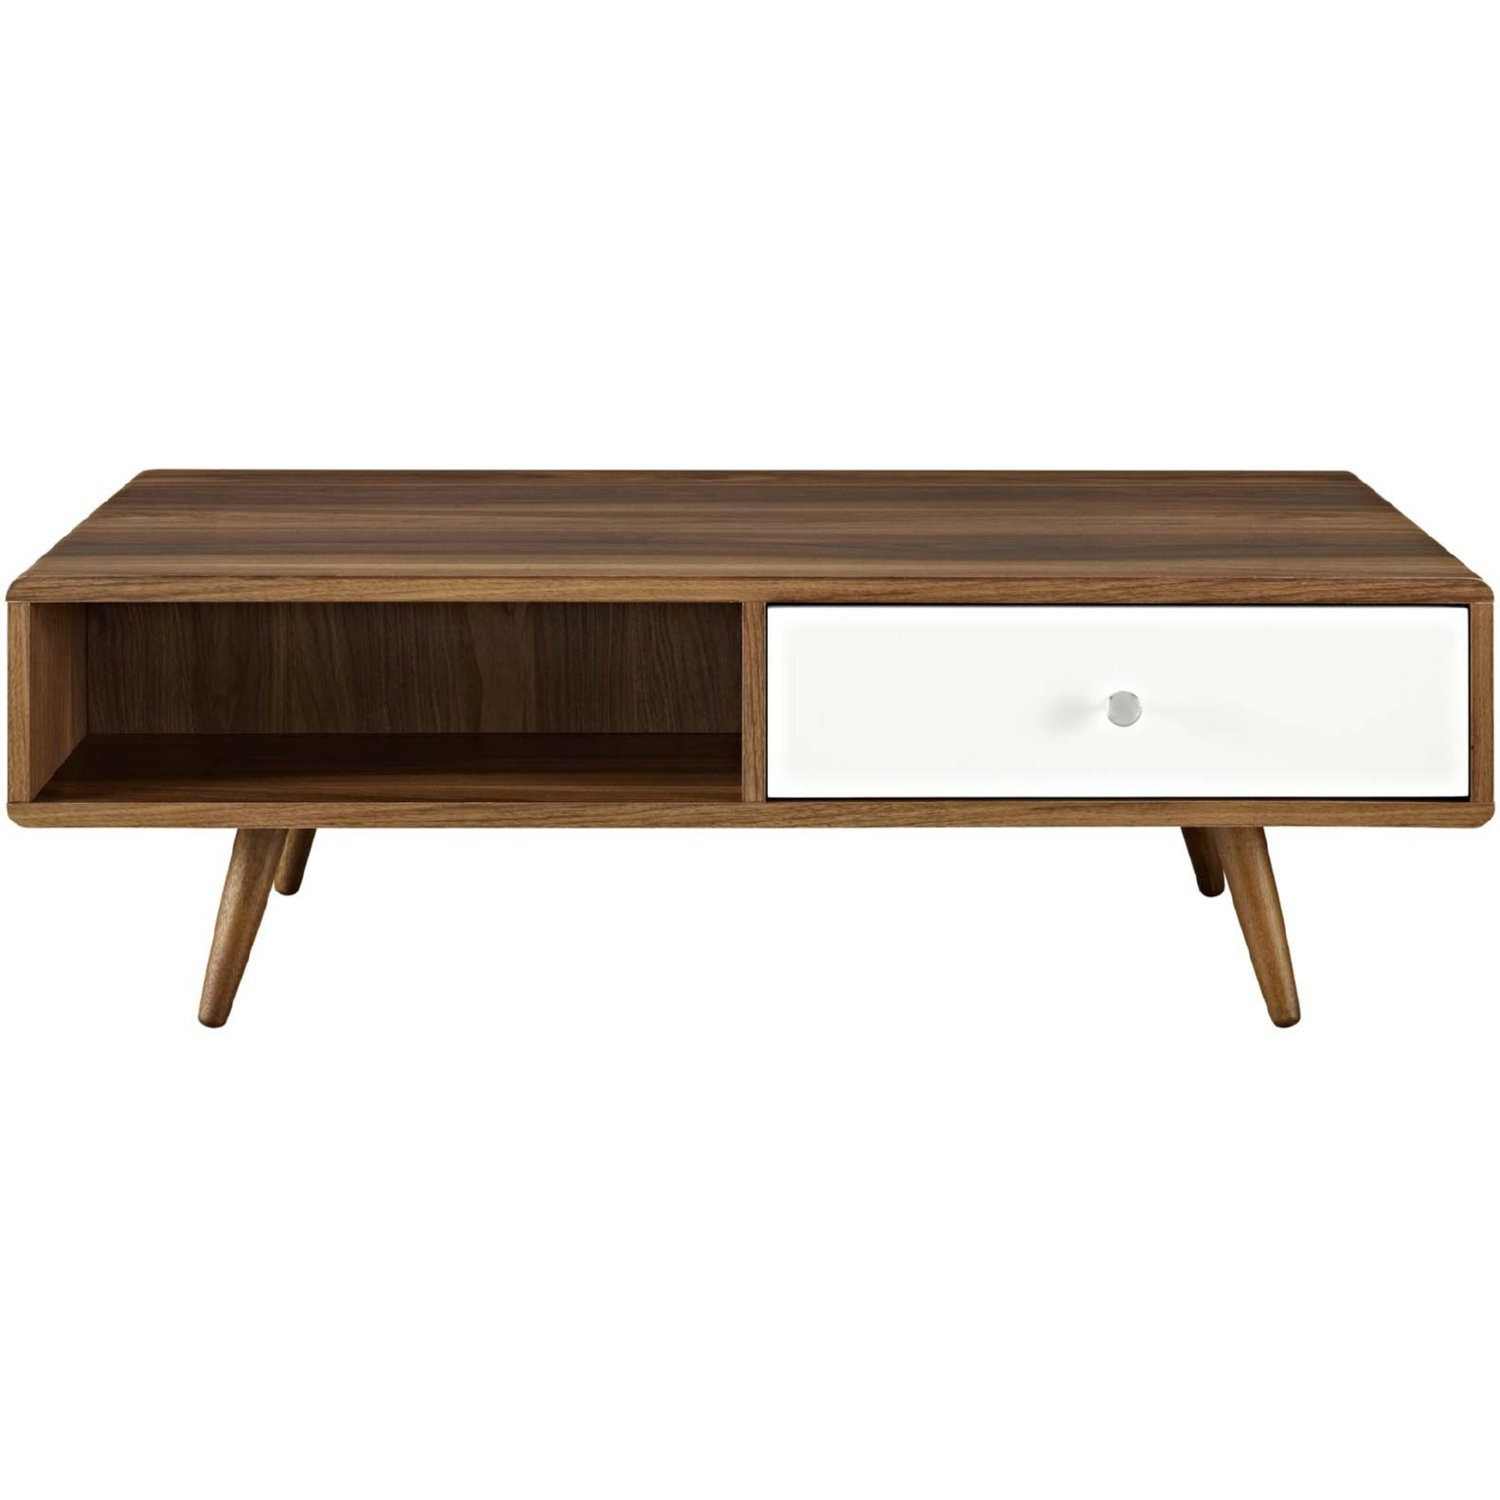 Modern Style Coffee Table In Walnut Finish - image-0